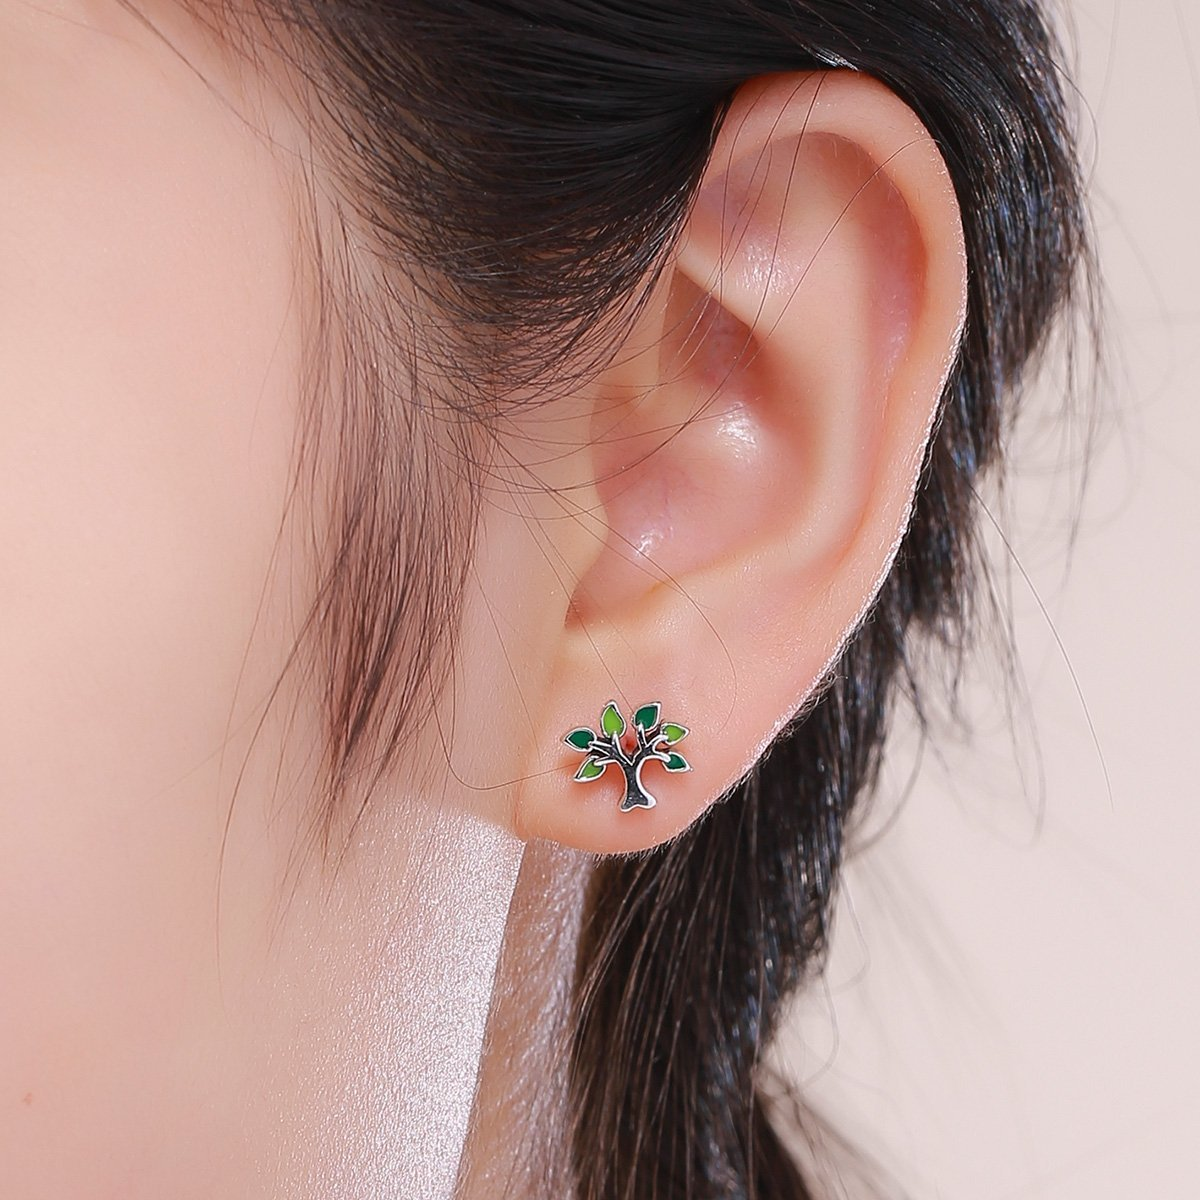 BISAER Tree of Life 925 Sterling Silver Stud Earrings with Green Enamel Leaves, Cute Post Stud Earring Hypoallergenic Jewelry for Women. by BISAER (Image #6)